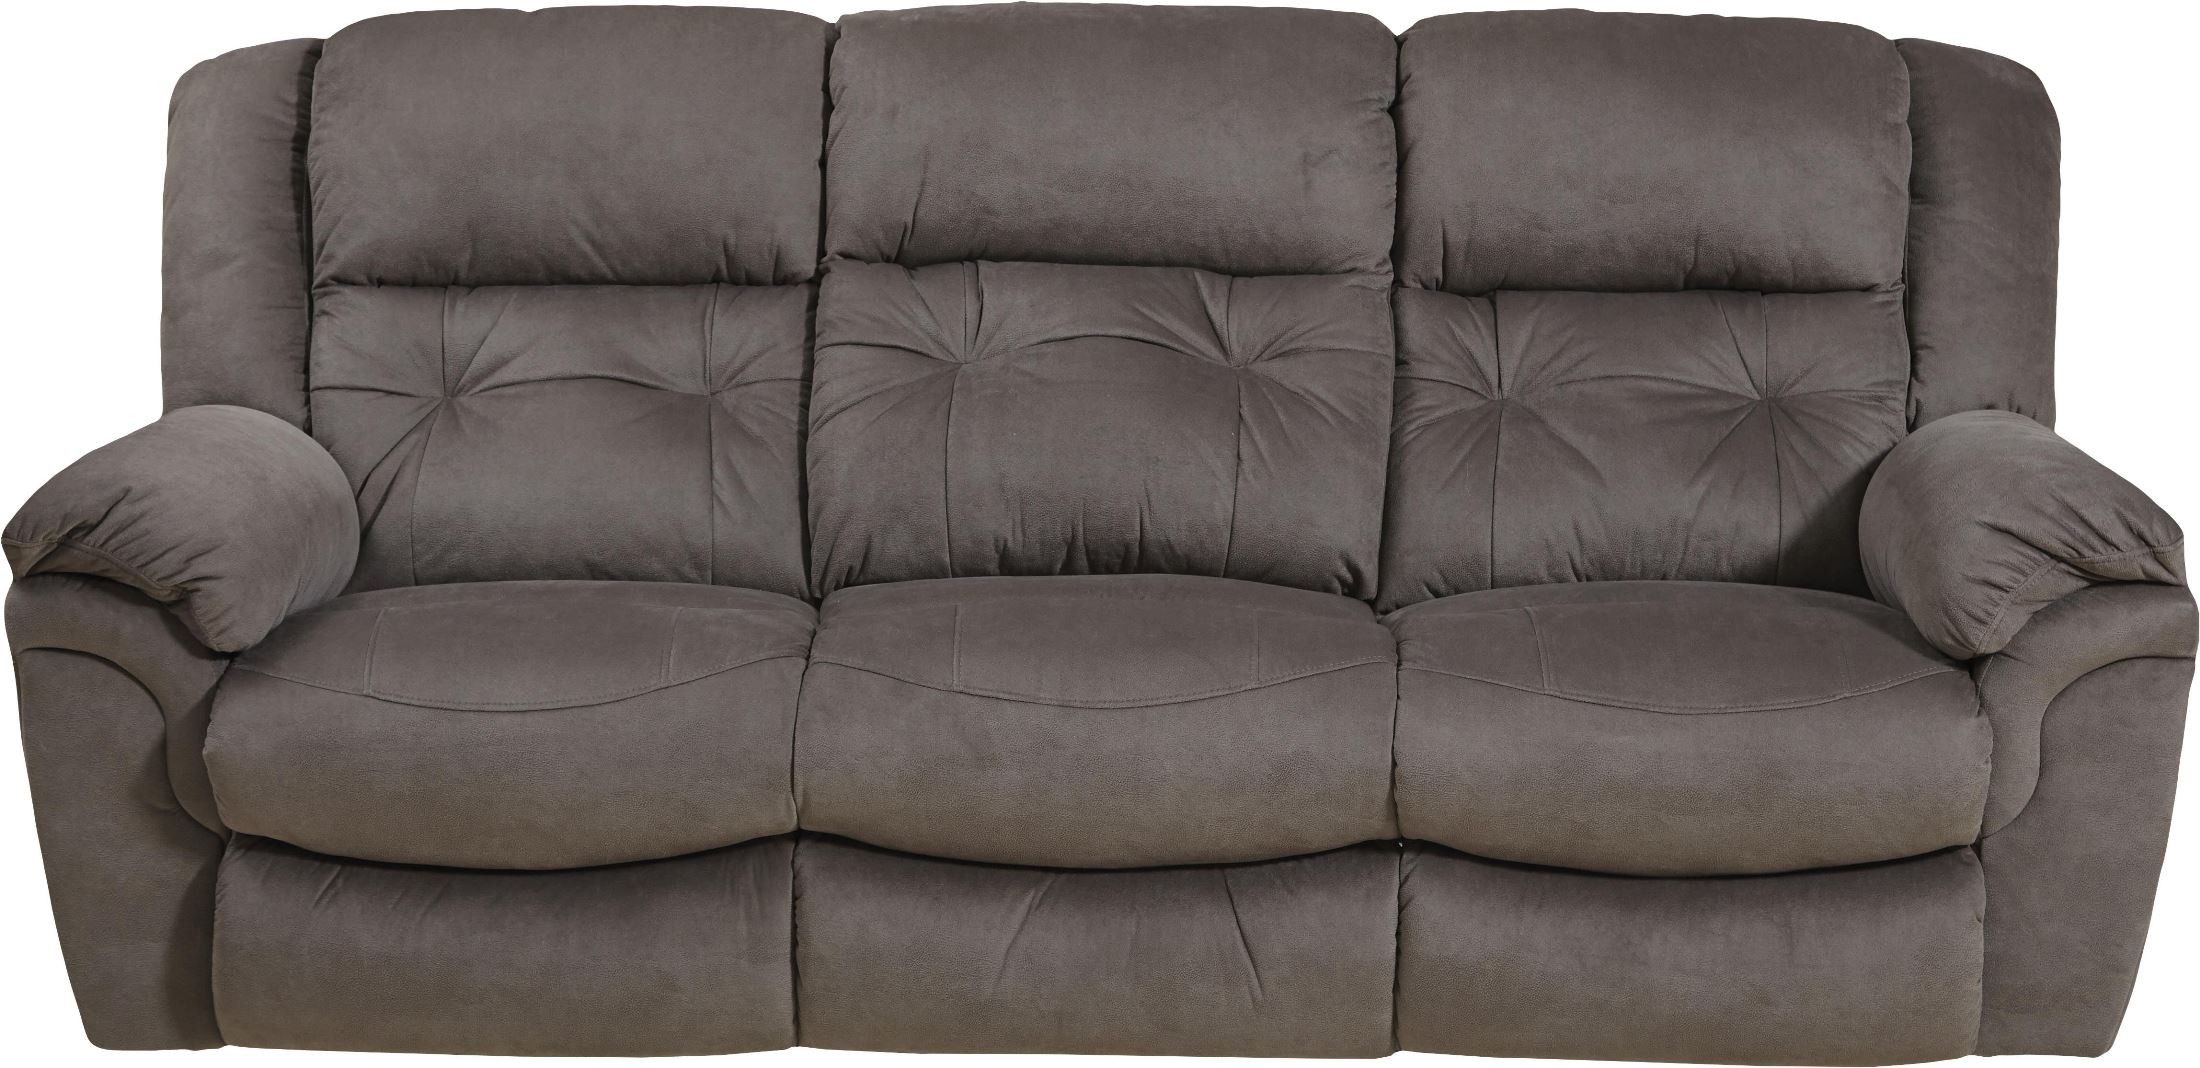 catnapper reclining sofas reviews replacement sofa cushion covers uk joyner slate from